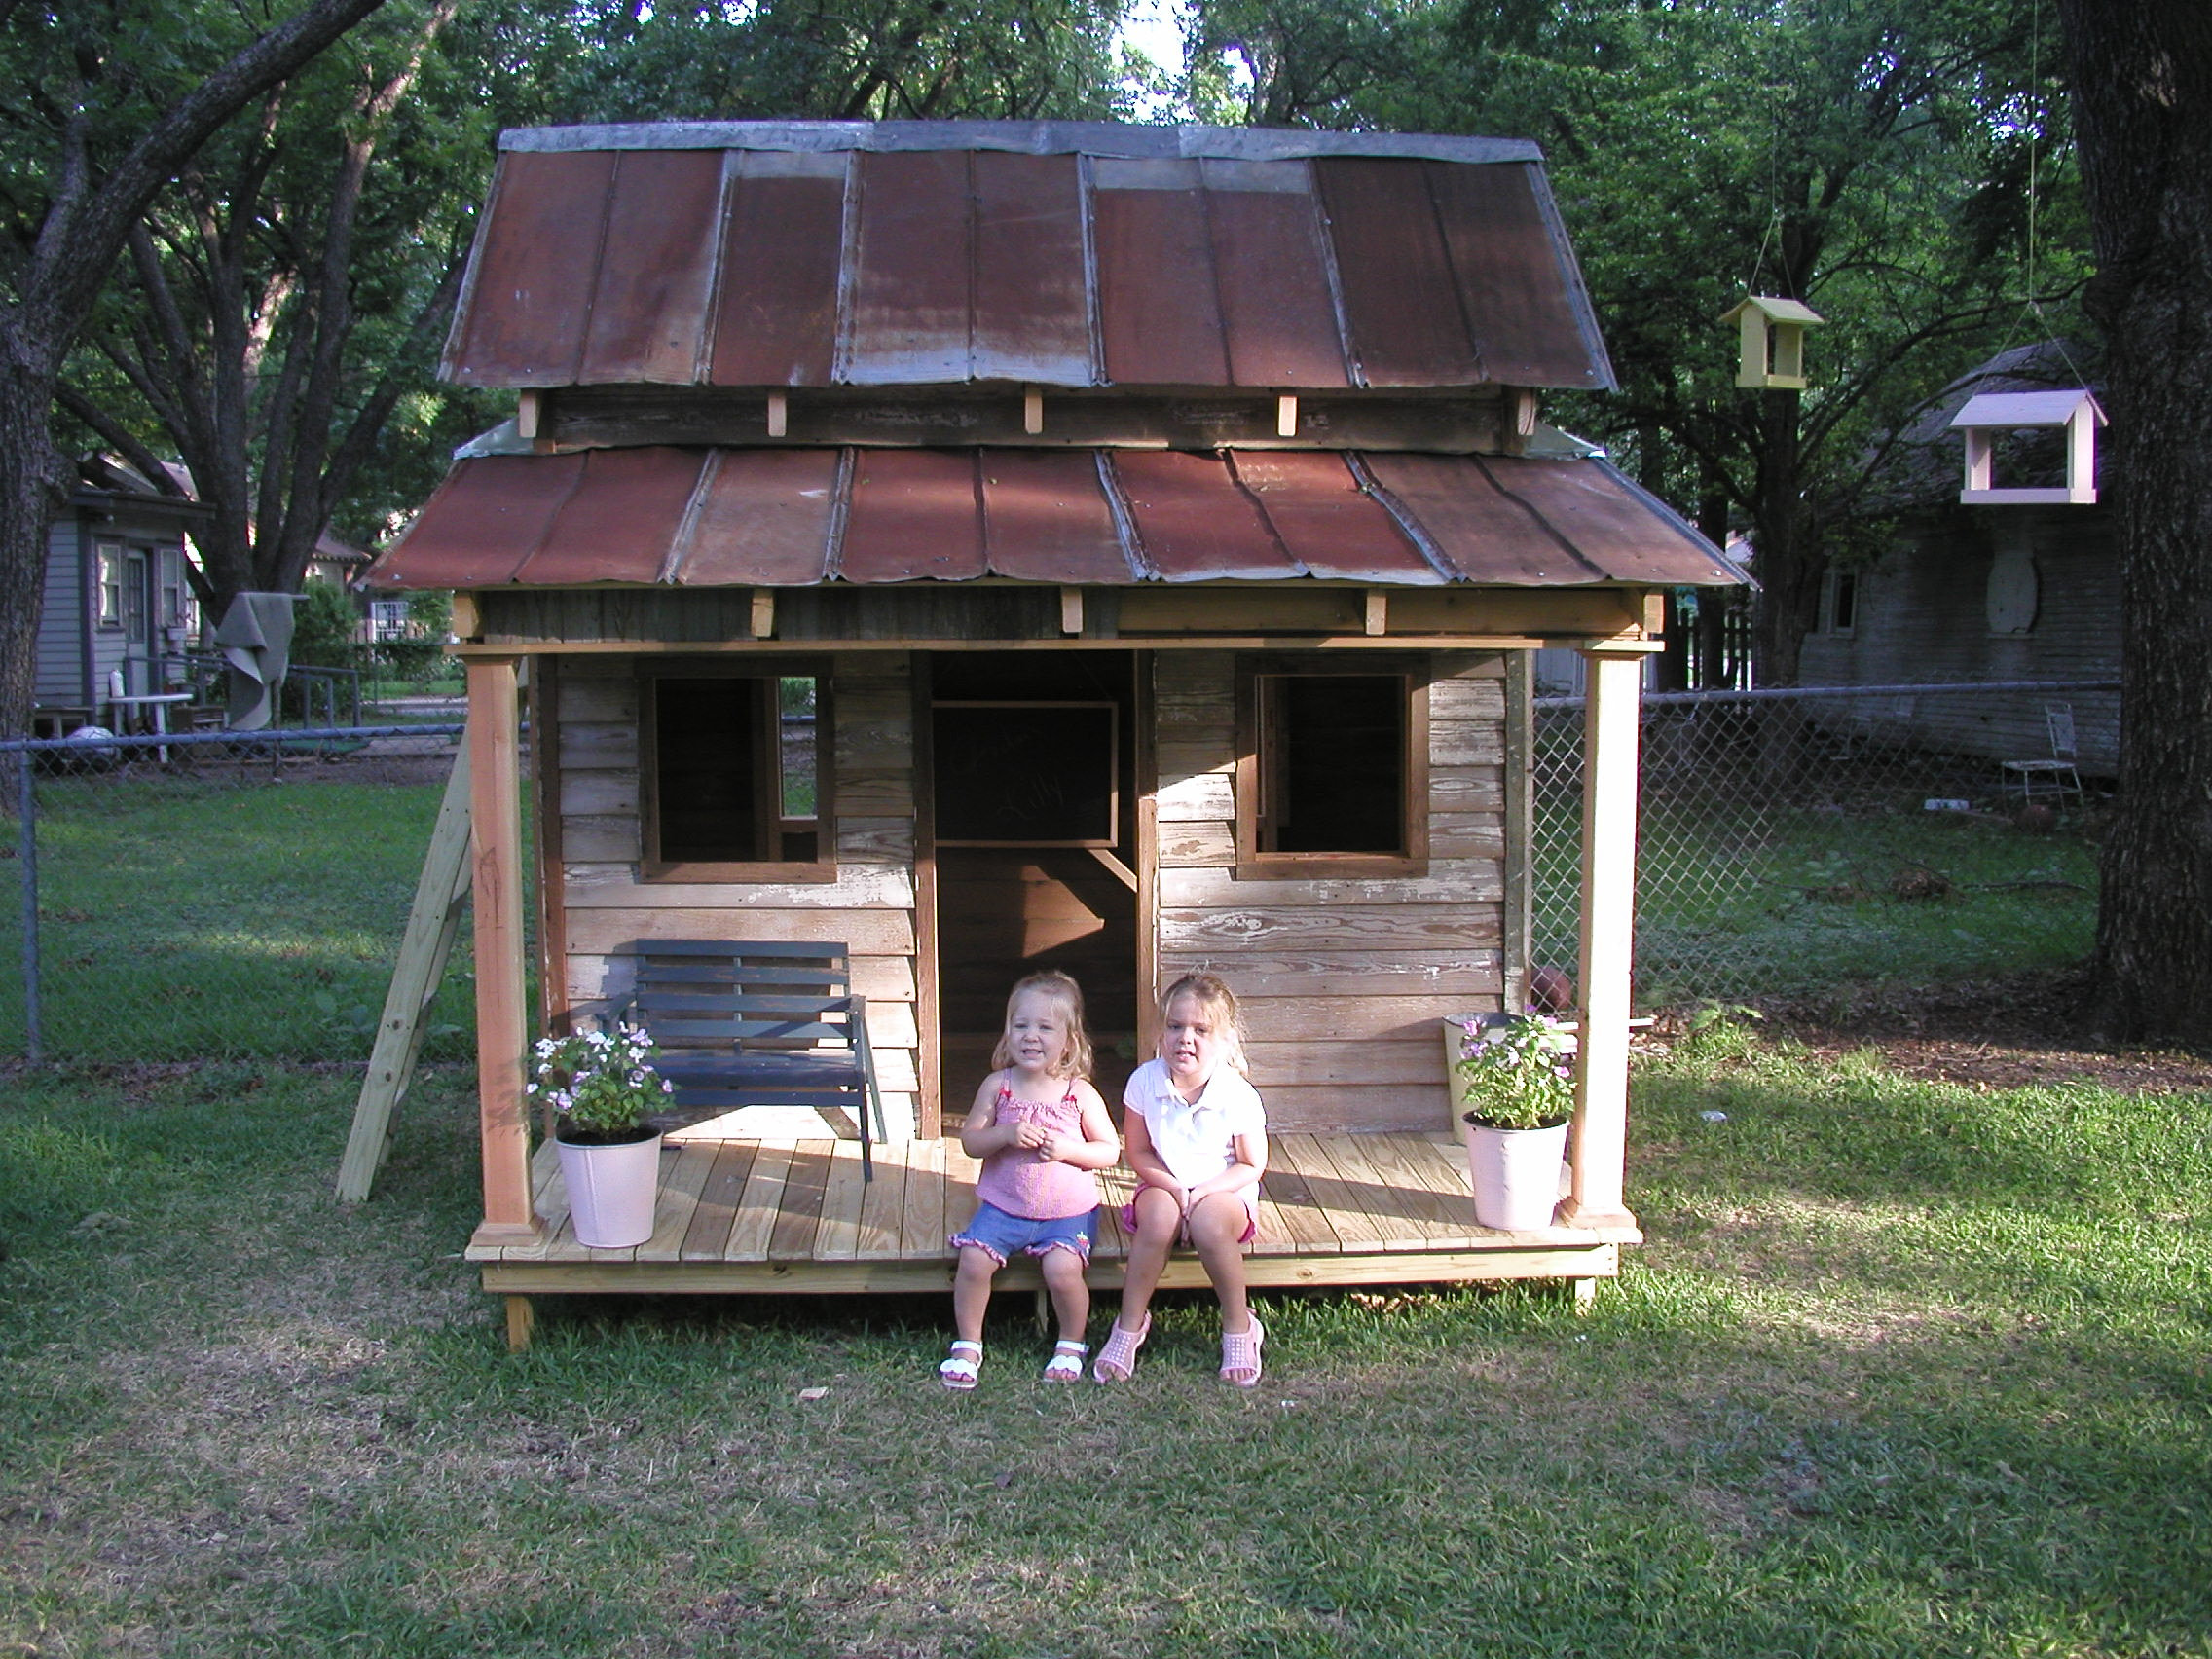 Restoring texas reclaimed repurposed resources two story for How to build a 2 story playhouse